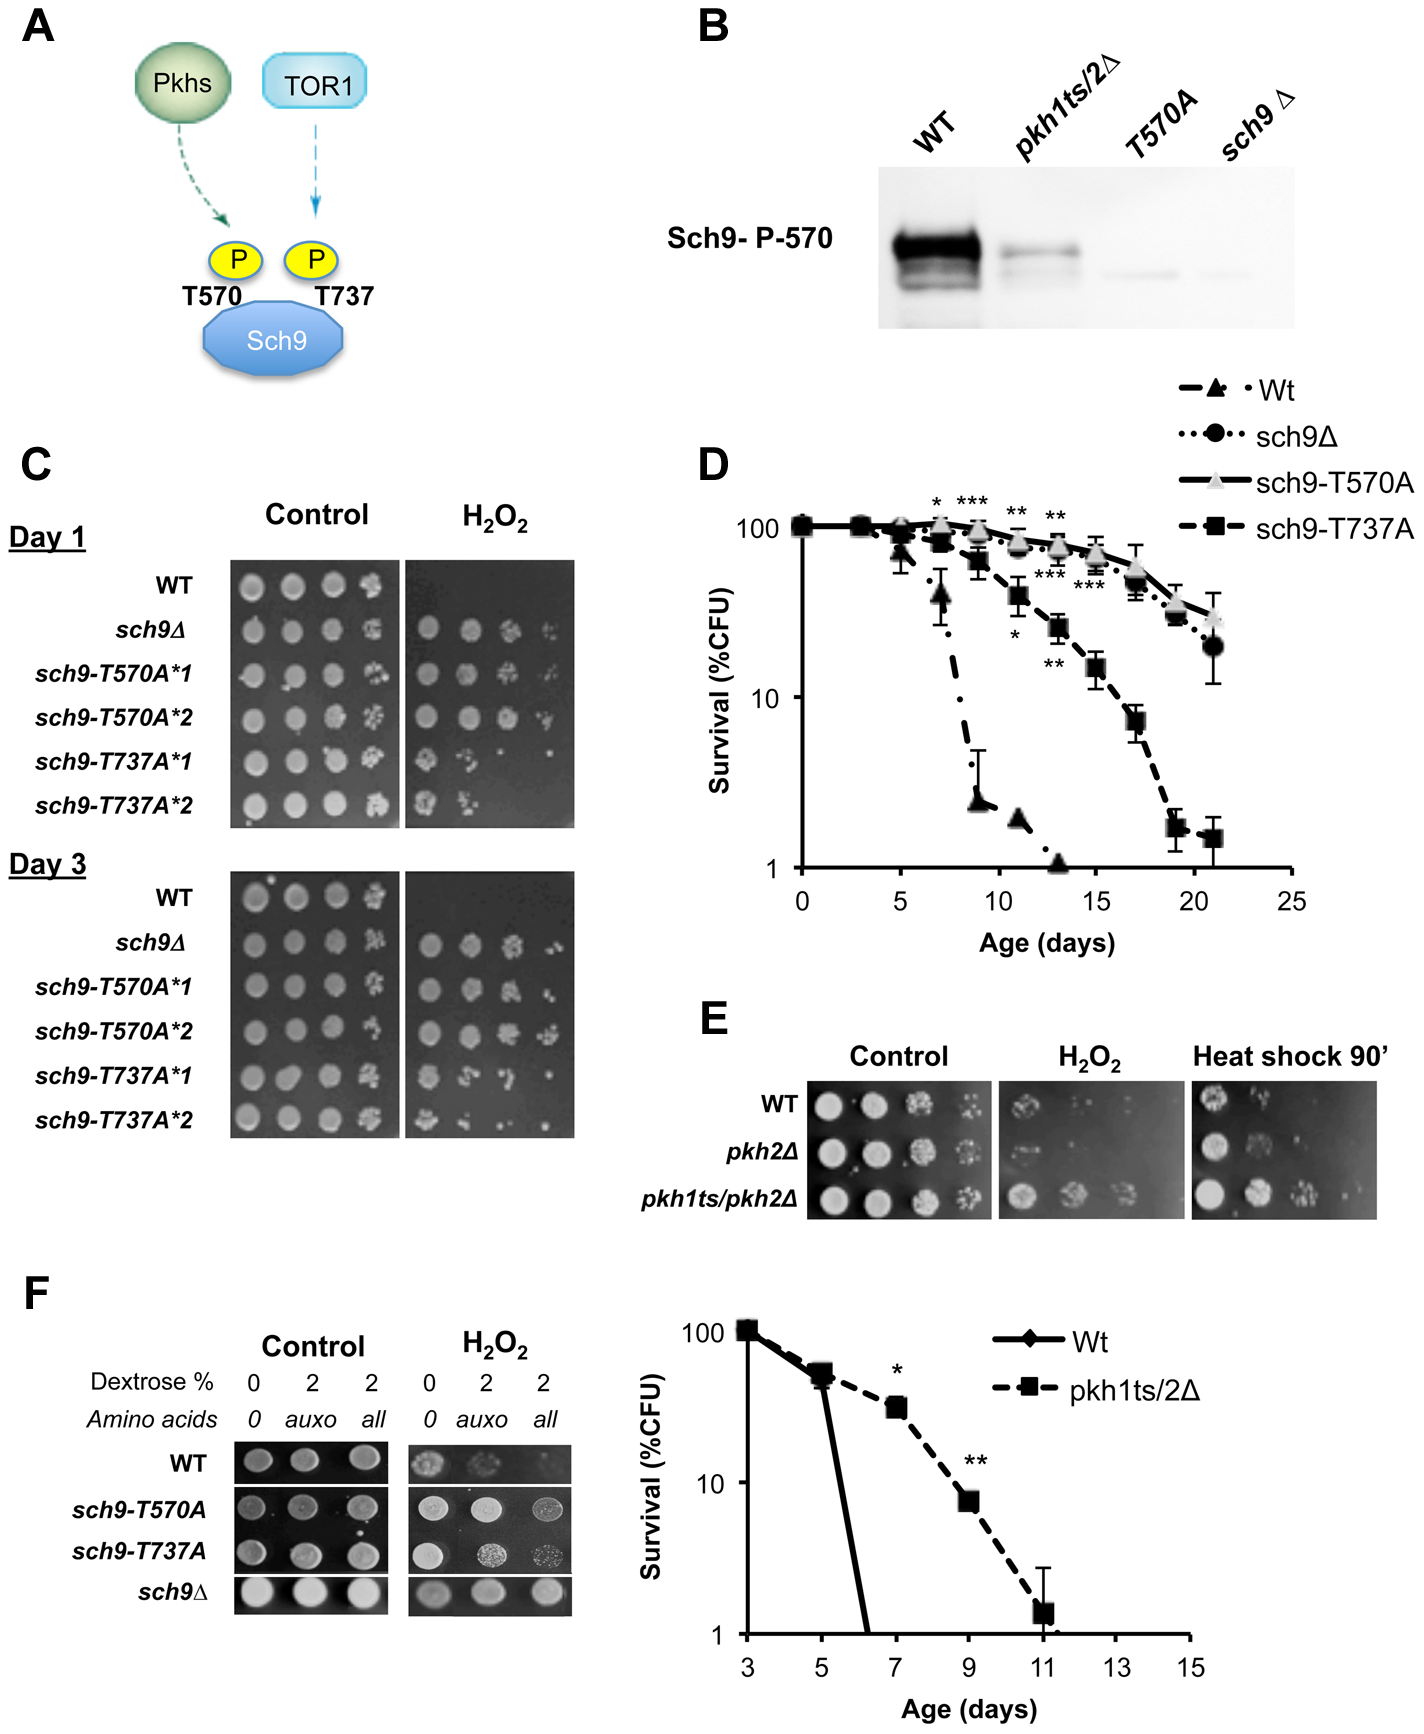 Role of Sch9 activation state in survival, stress resistance and amino acids response.